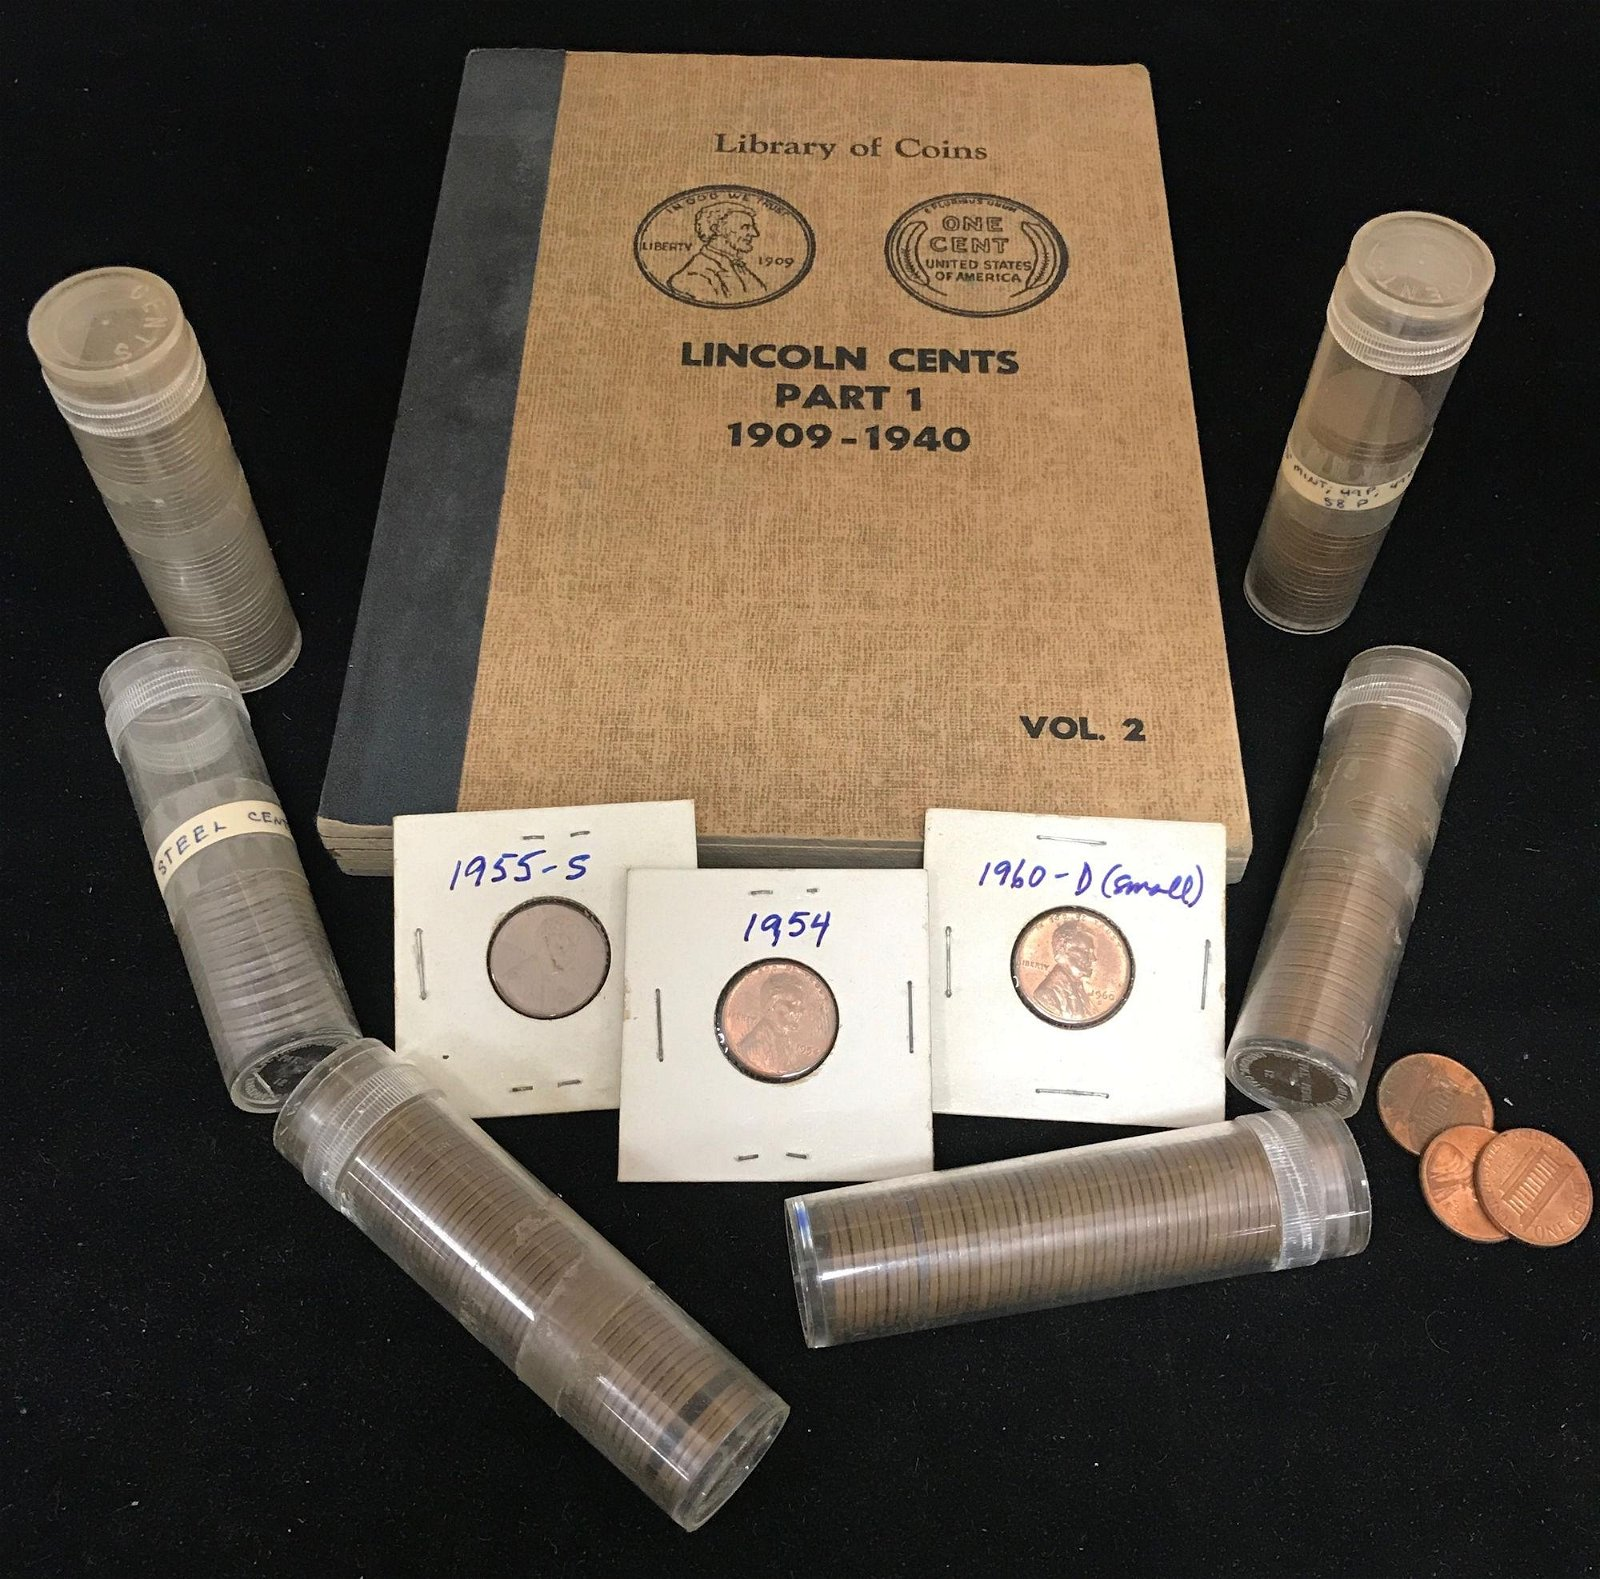 LOT U.S. CENTS INCLUDING LIBRARY OF COINS LINCOLN CENTS